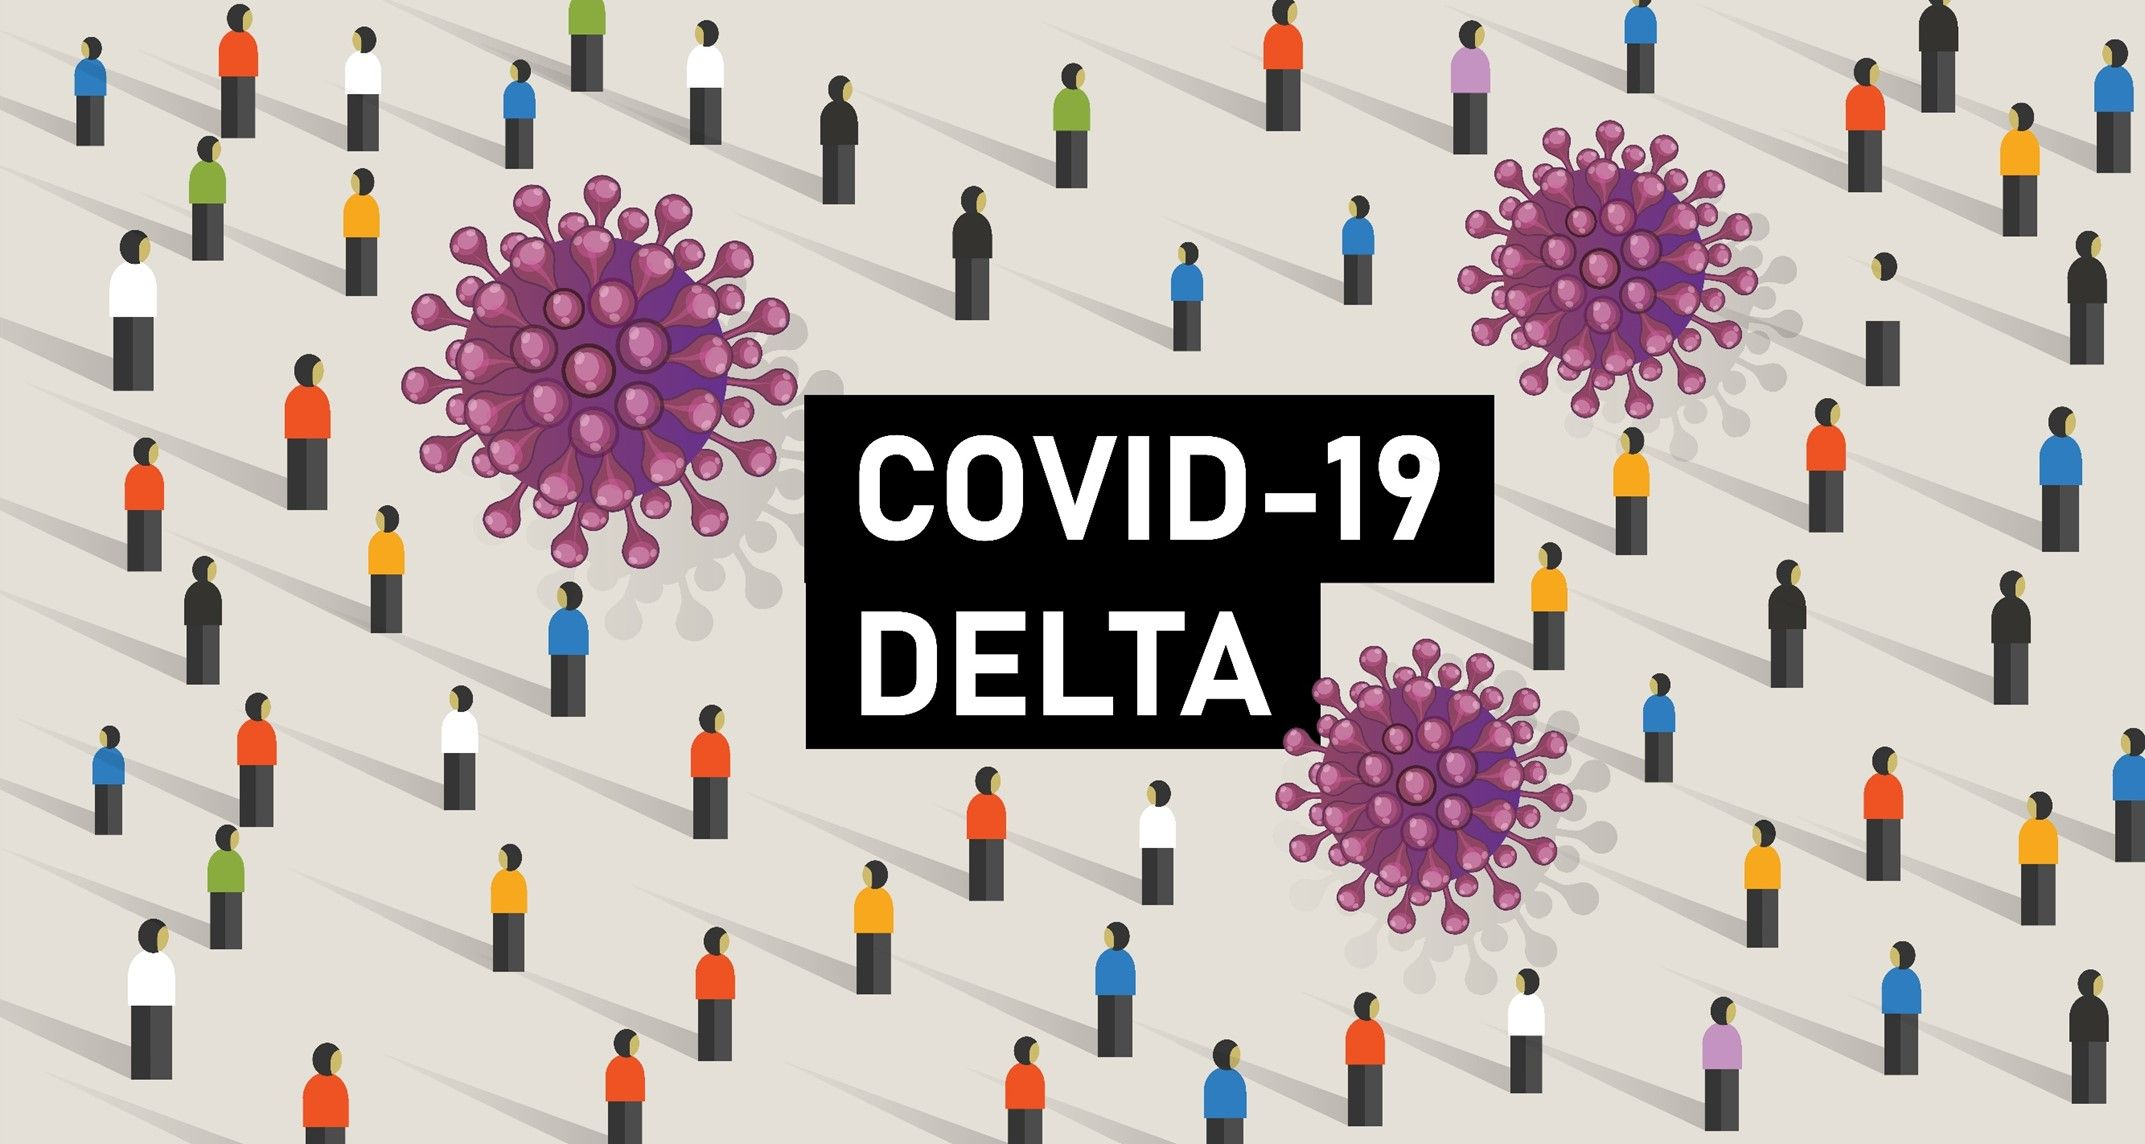 Delta virus and people